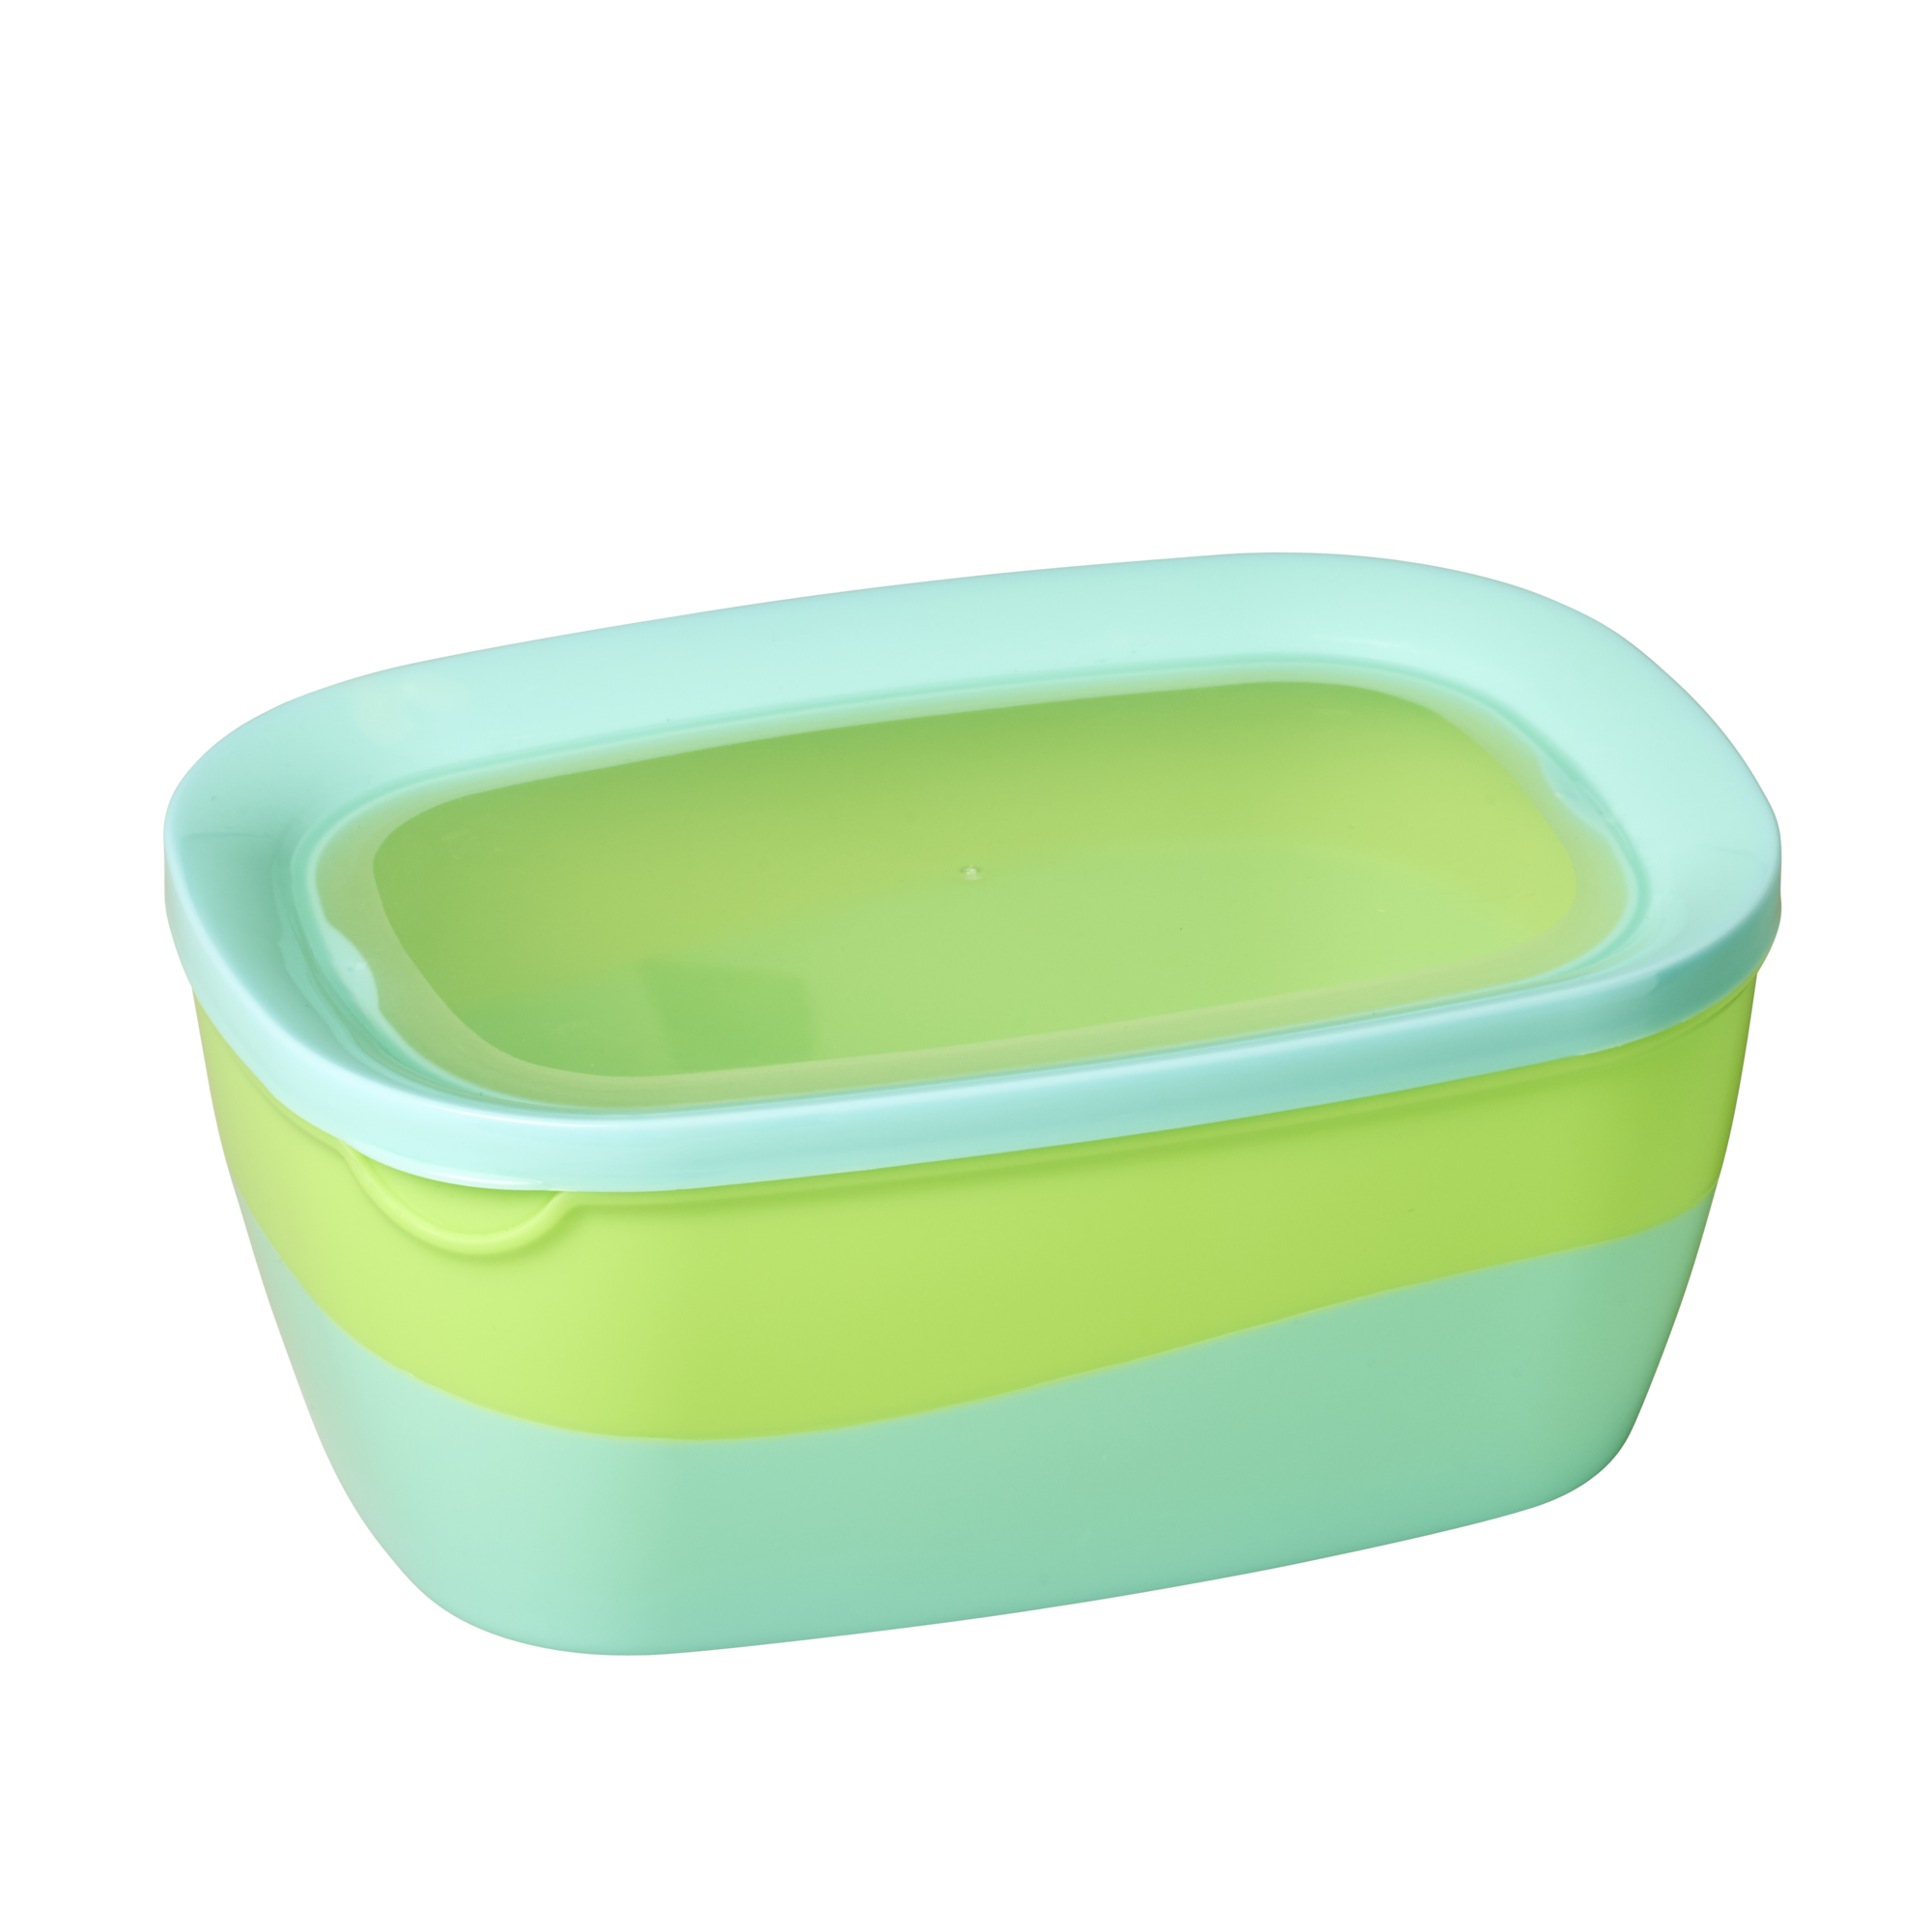 Food boxes set of 3 in blue green colors from Rice